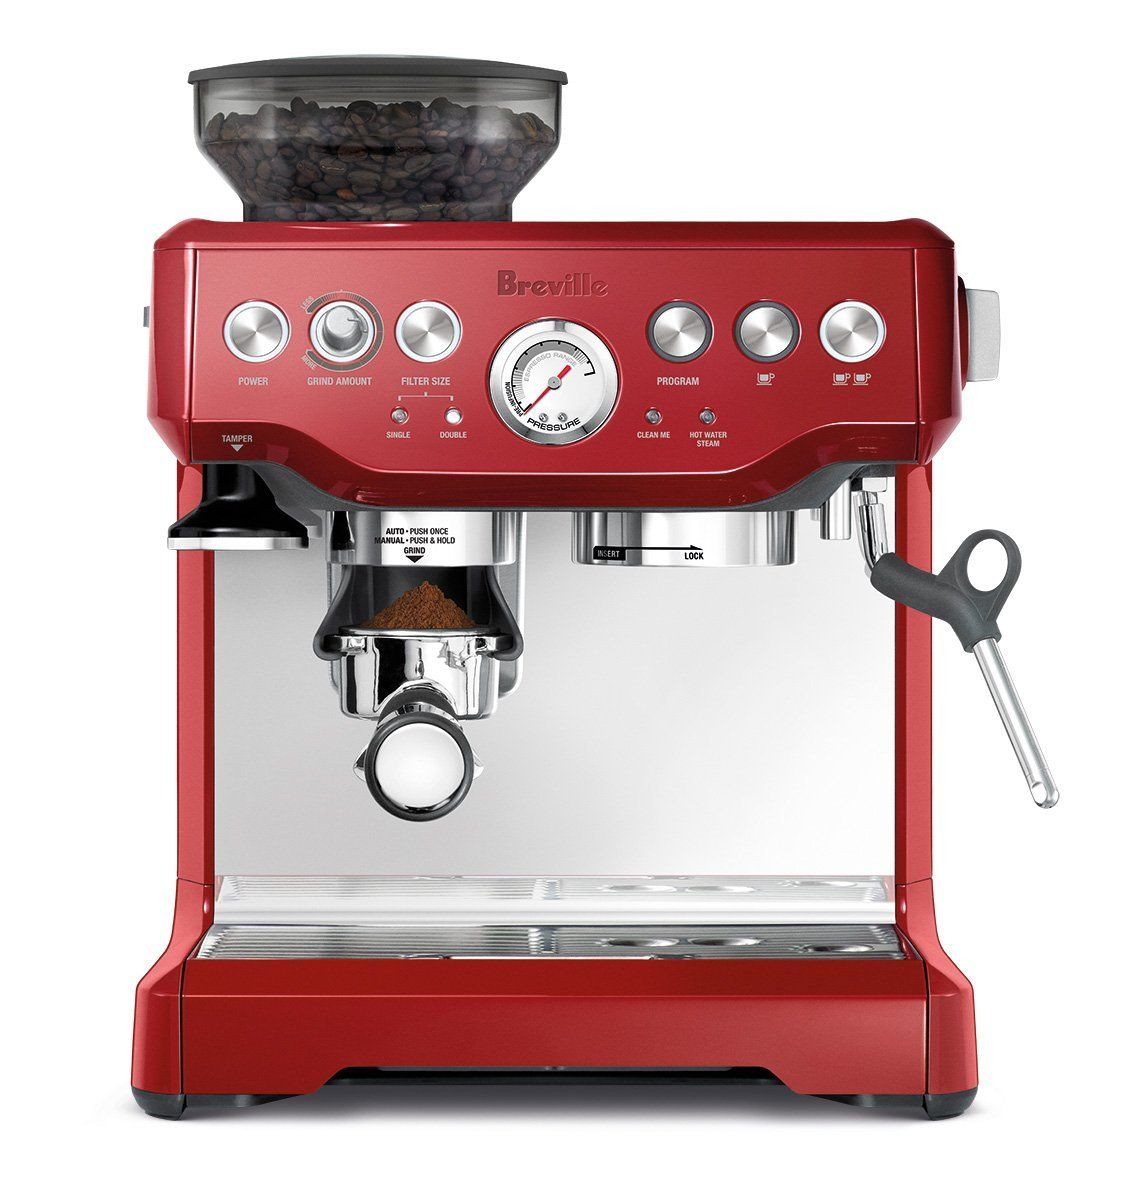 Breville Bes870cbxl The Barista Express Coffee Machine Cranberry Red Check Out The Image By Espresso Machine Breville Espresso Commercial Espresso Machine